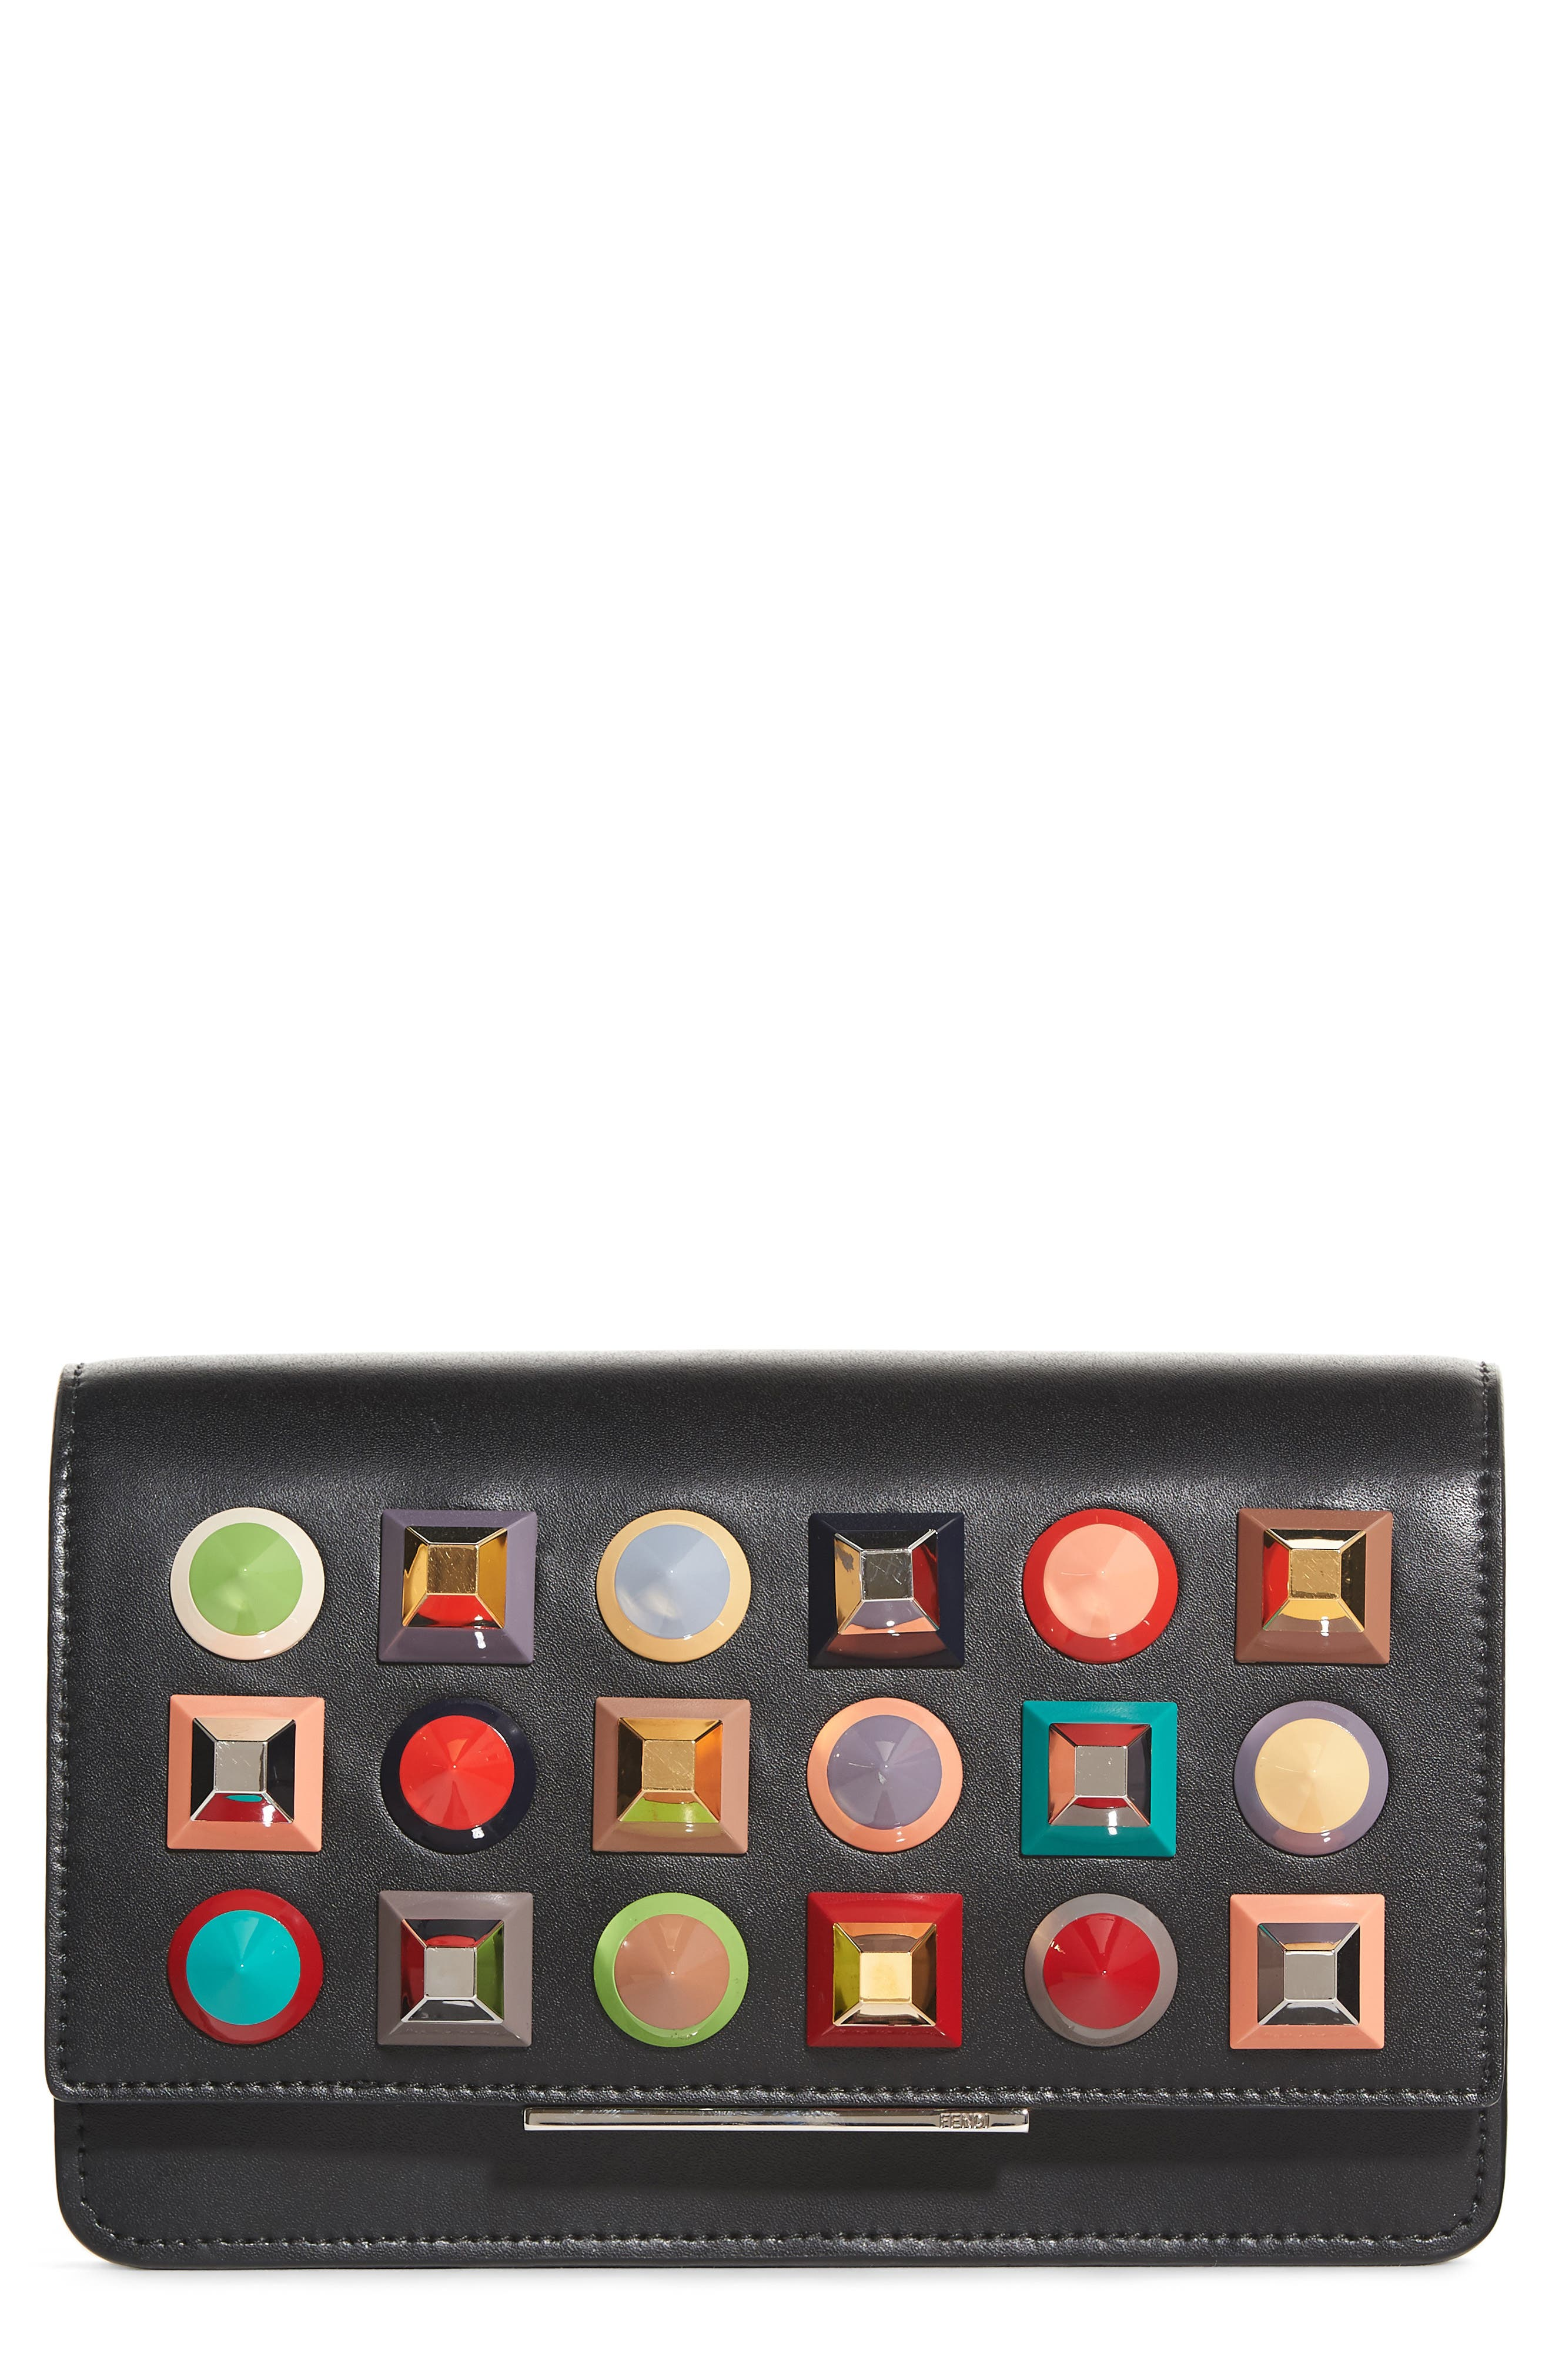 Alternate Image 1 Selected - Fendi Rainbow Studded Leather Tube Wallet on a Chain